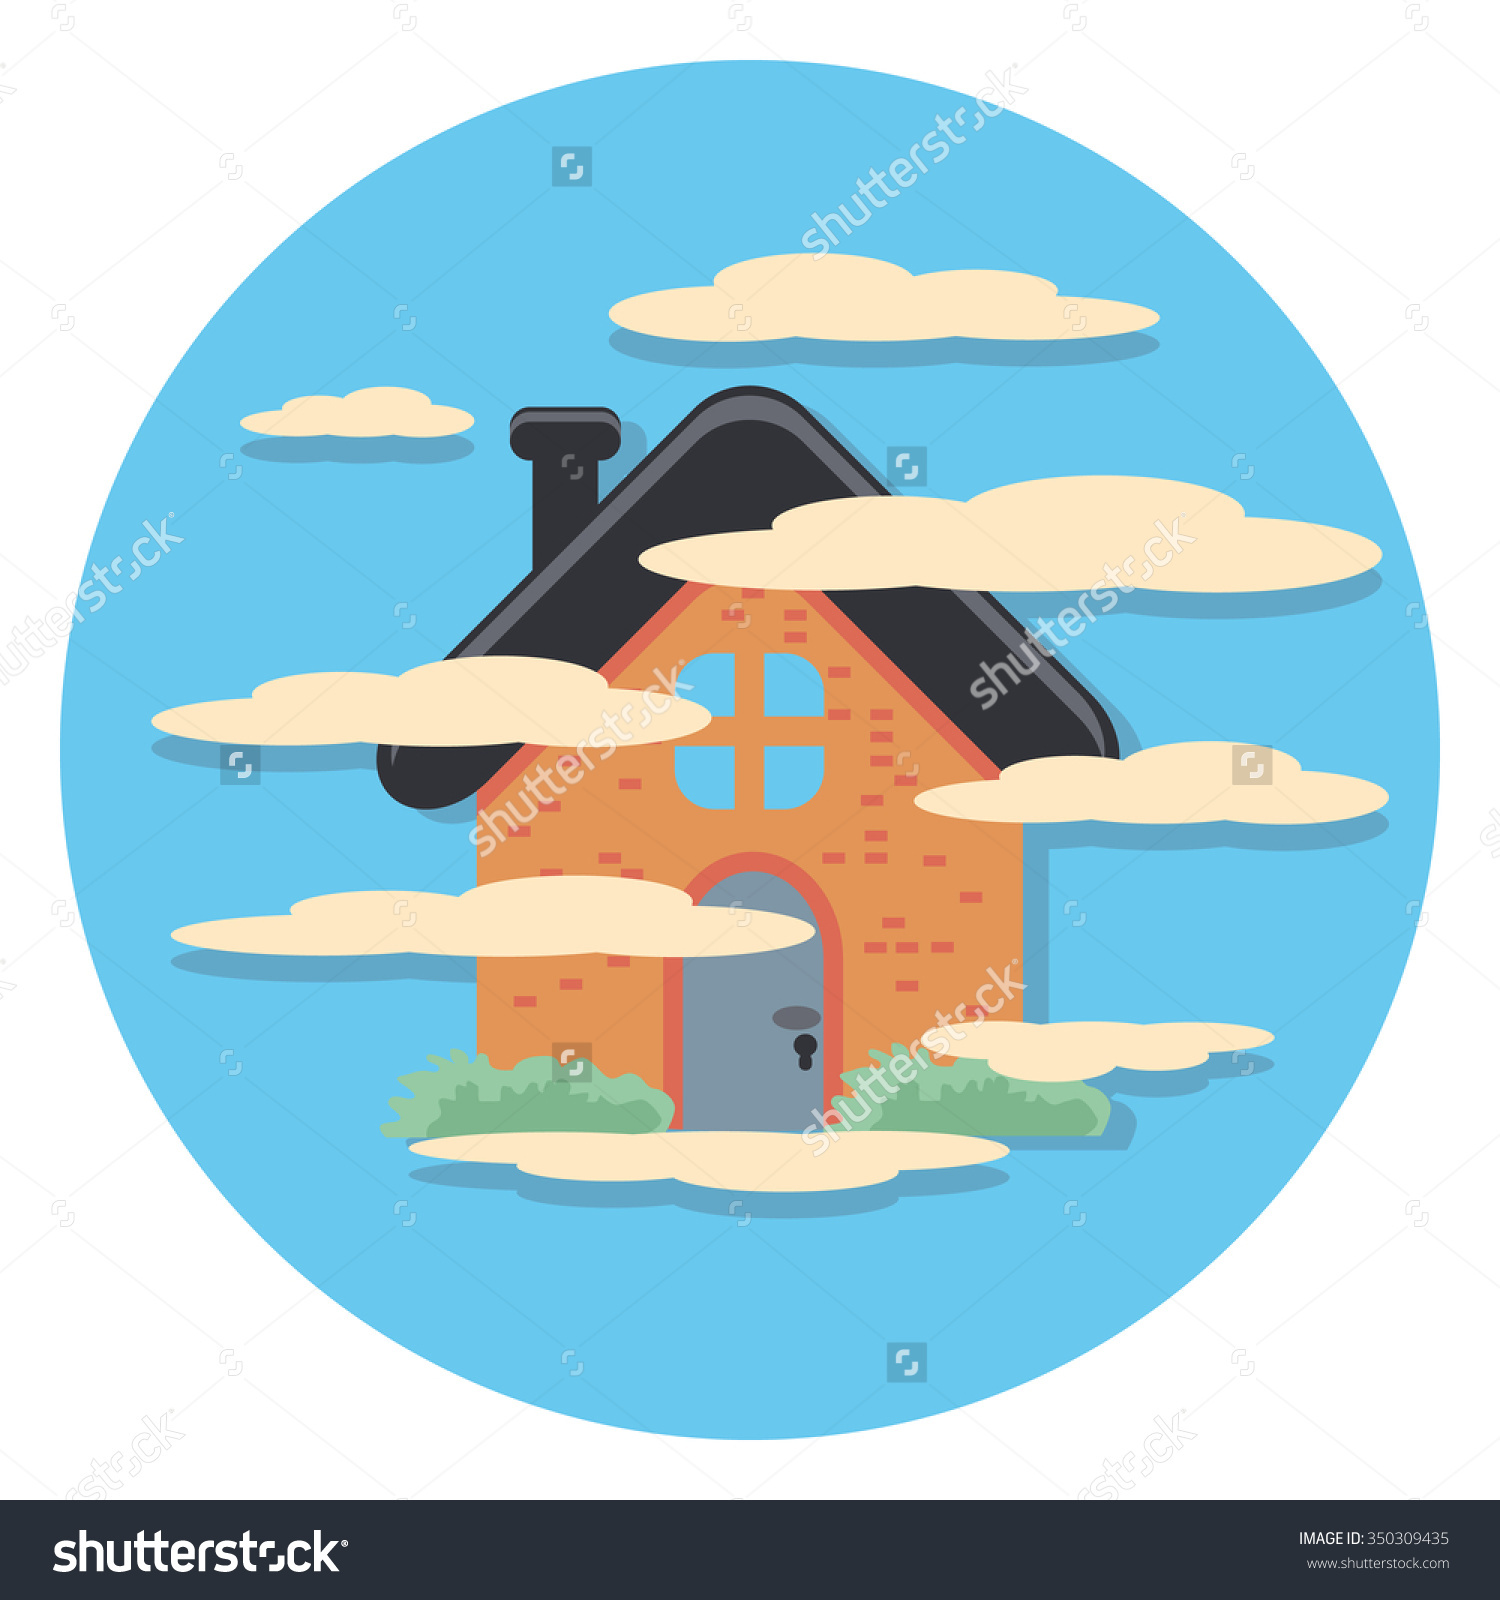 House Fog Flat Icon Circle Stock Vector 350309435.